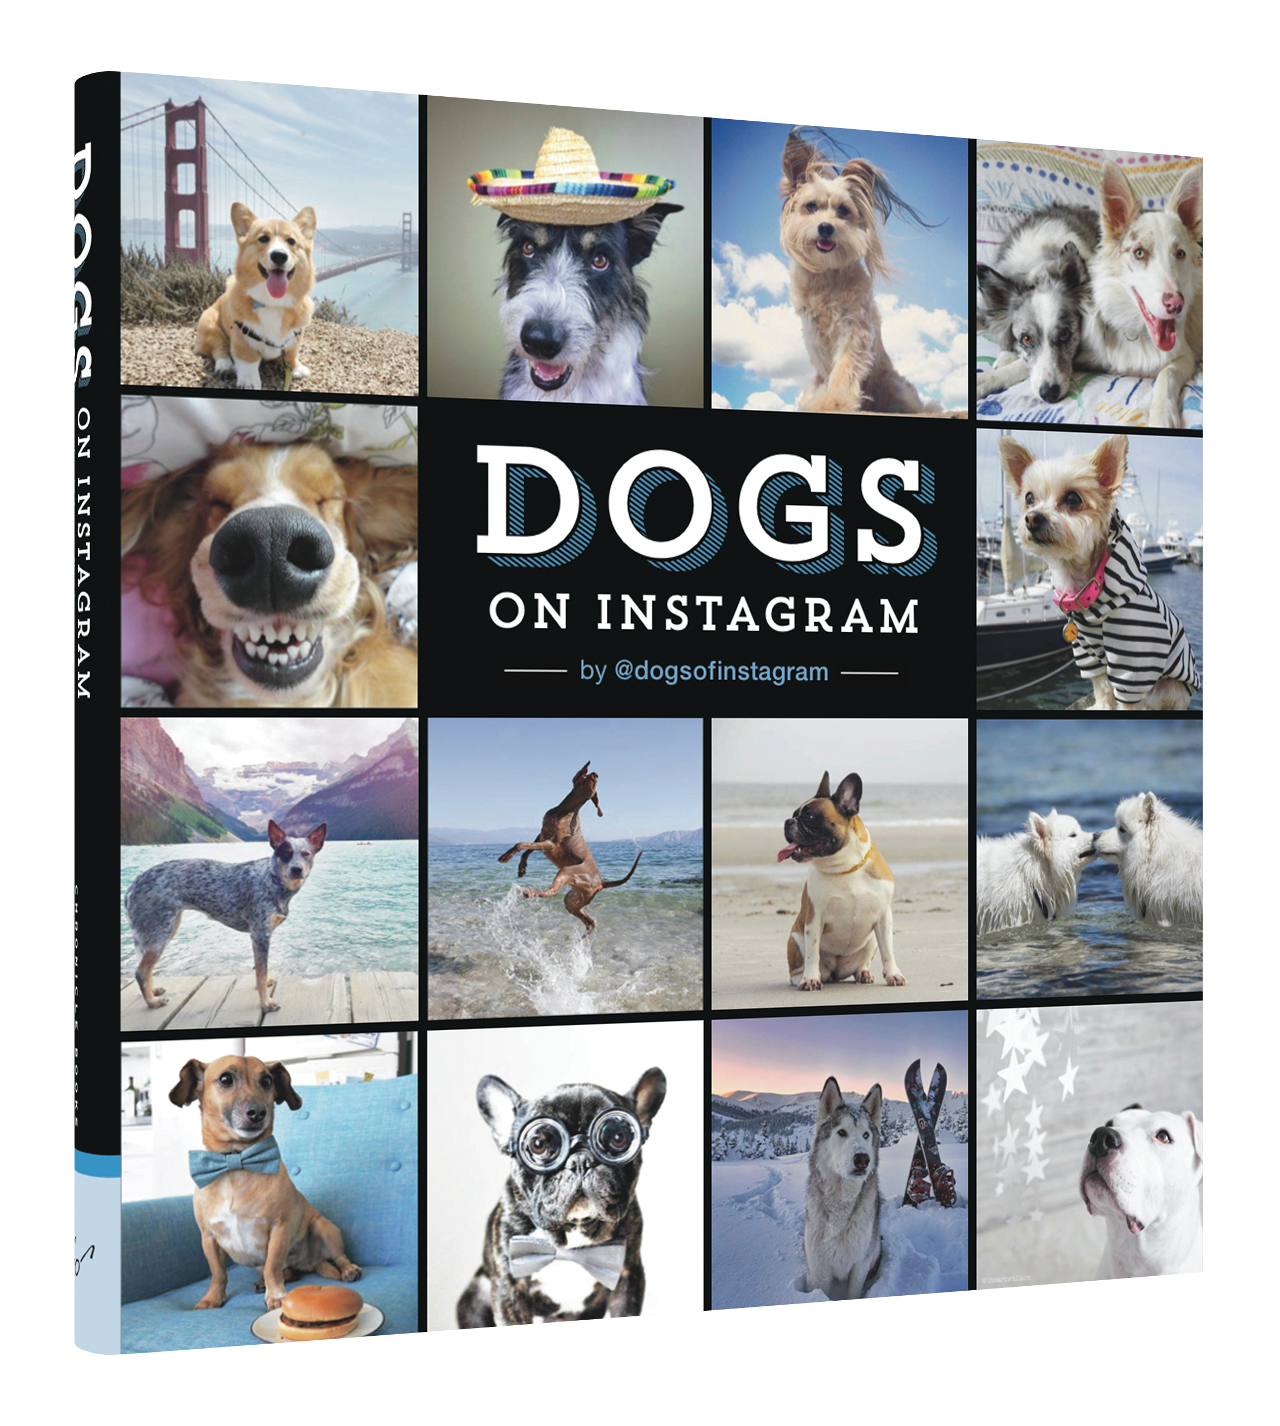 Dogs on Instagram Book Giveaway with Chronicle Books and @dogsofinstagram